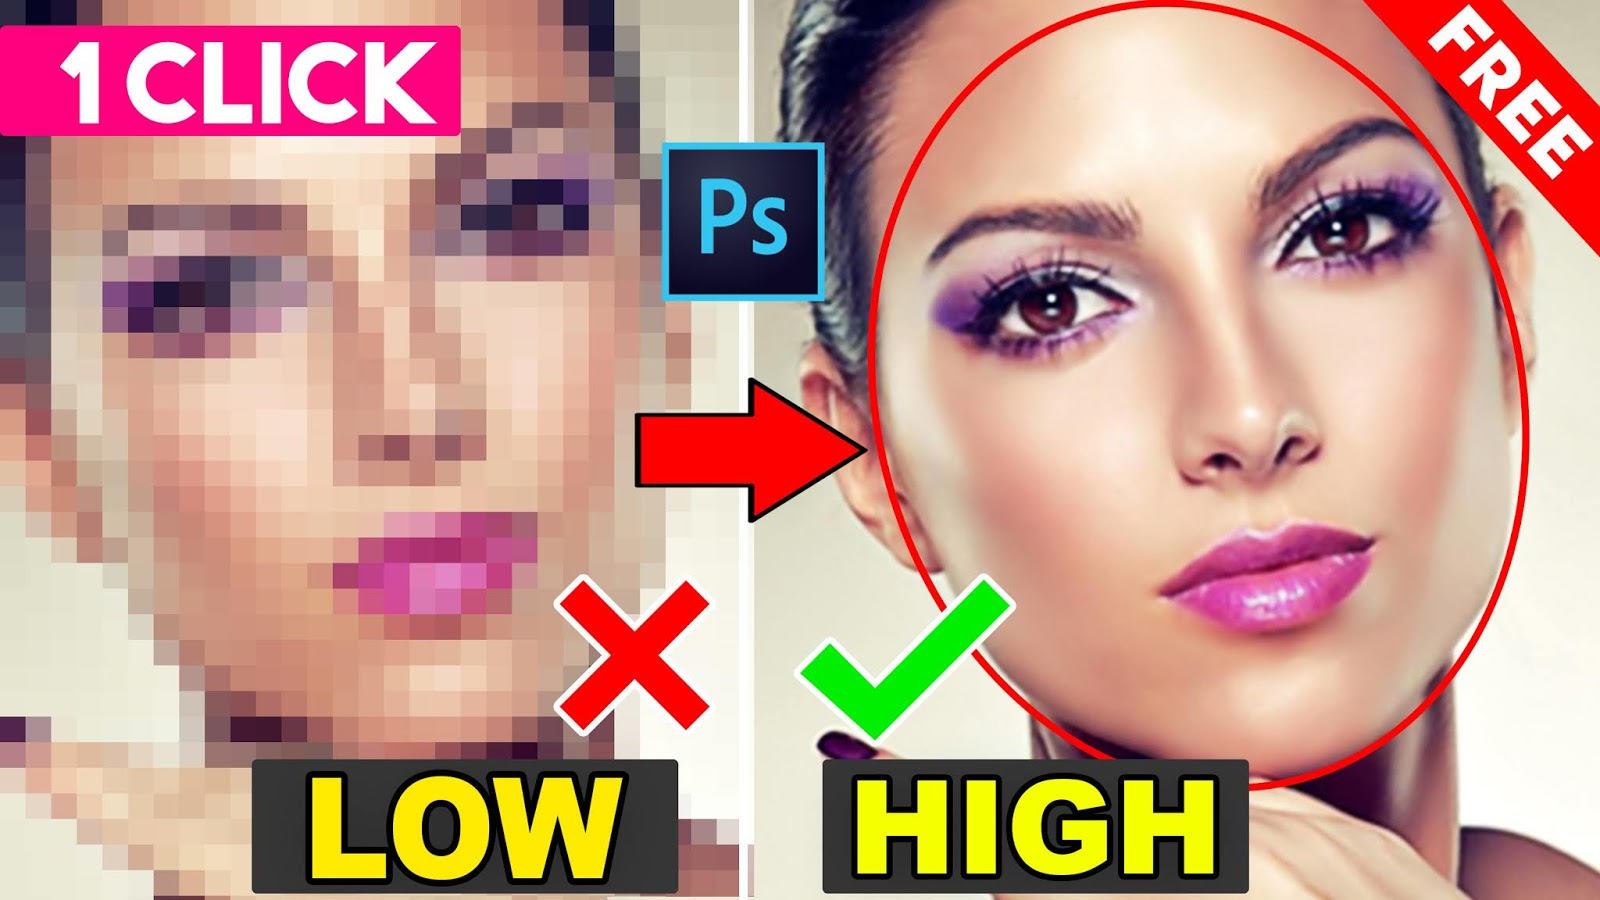 1 click convert into high quality photo in photoshop